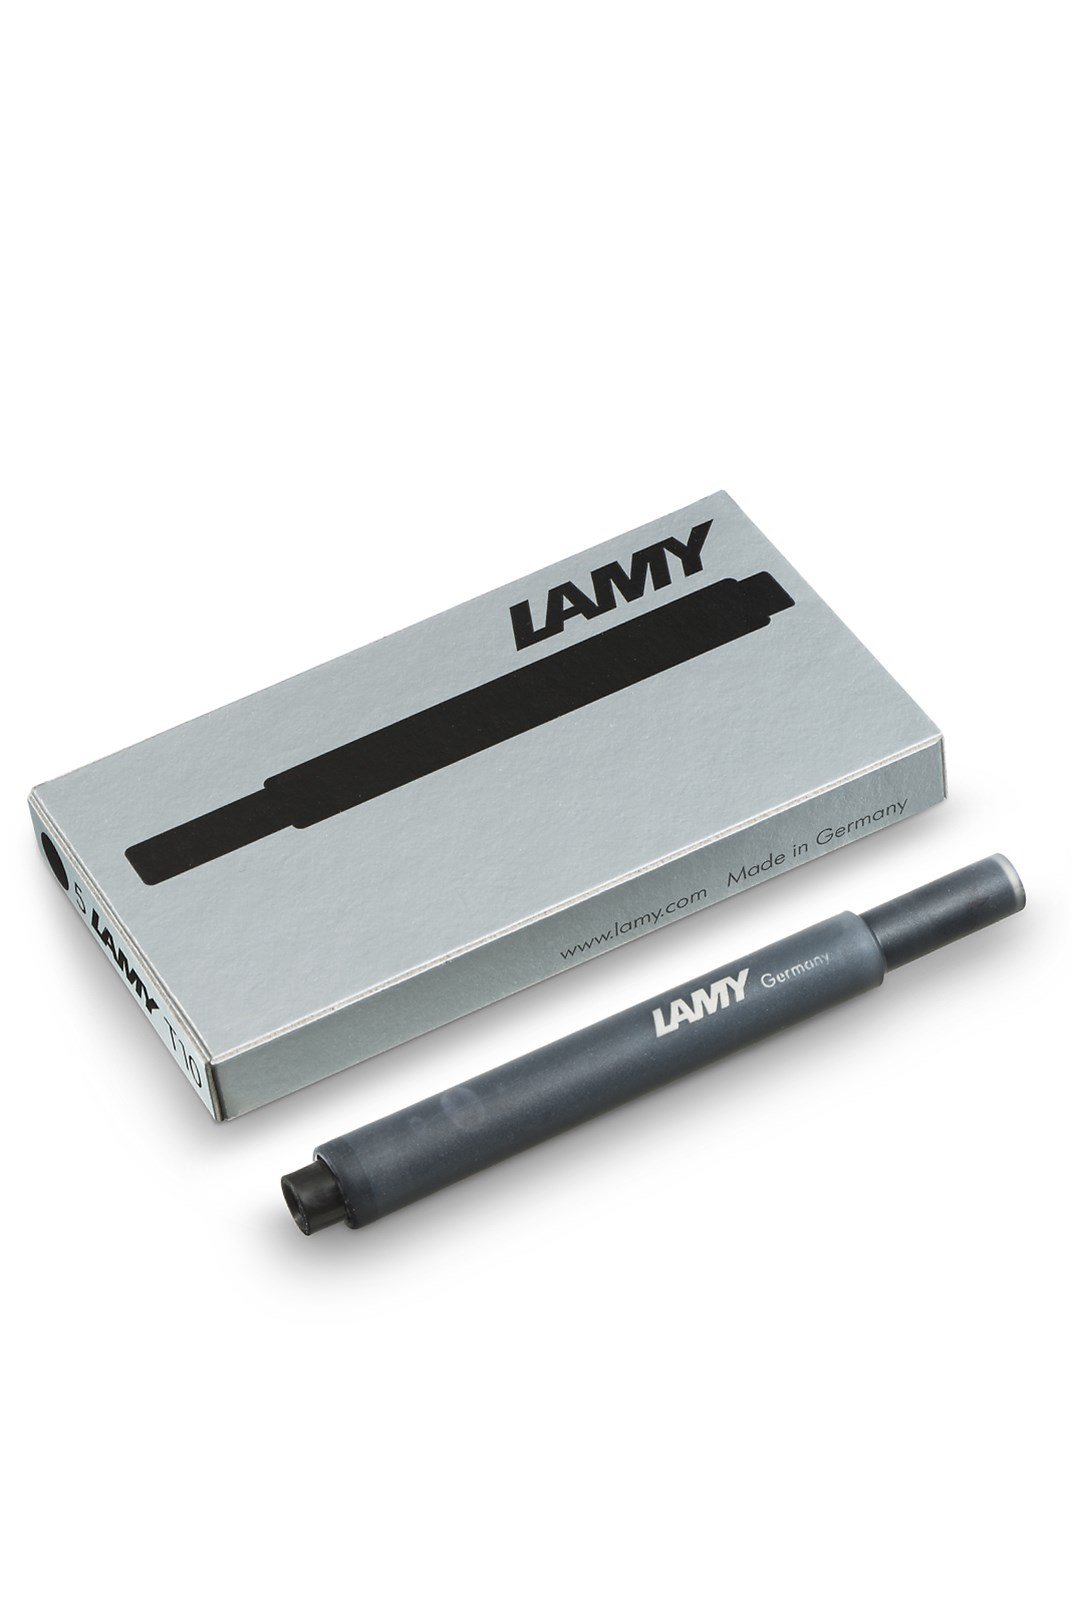 LAMY - T10 Fountain Pen Ink Cartridges - Pack of 5 - Black